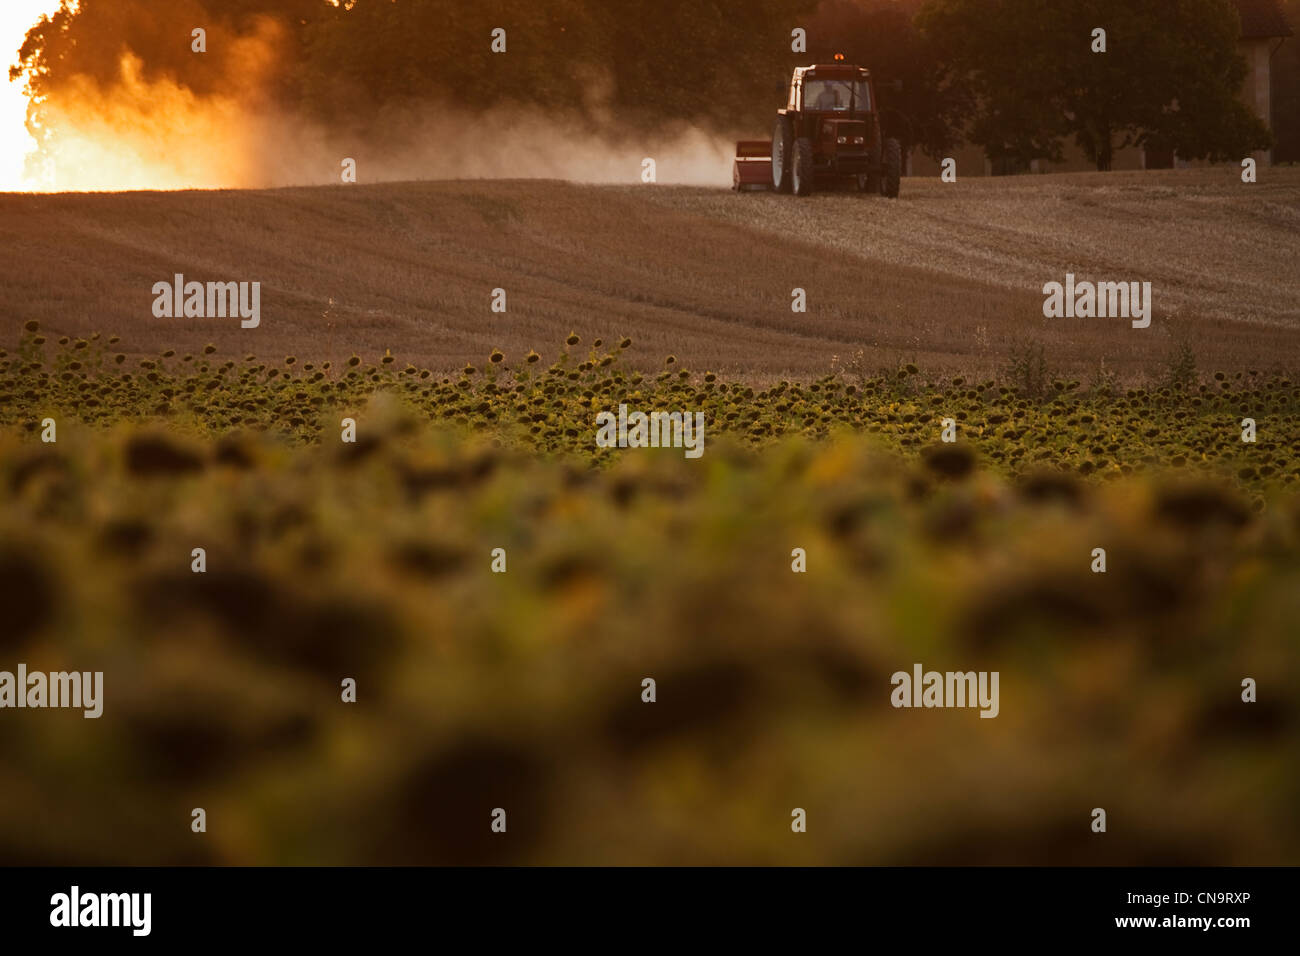 France, Gers, near Condom, Agricultural Landscape, sunflower field and tractor - Stock Image